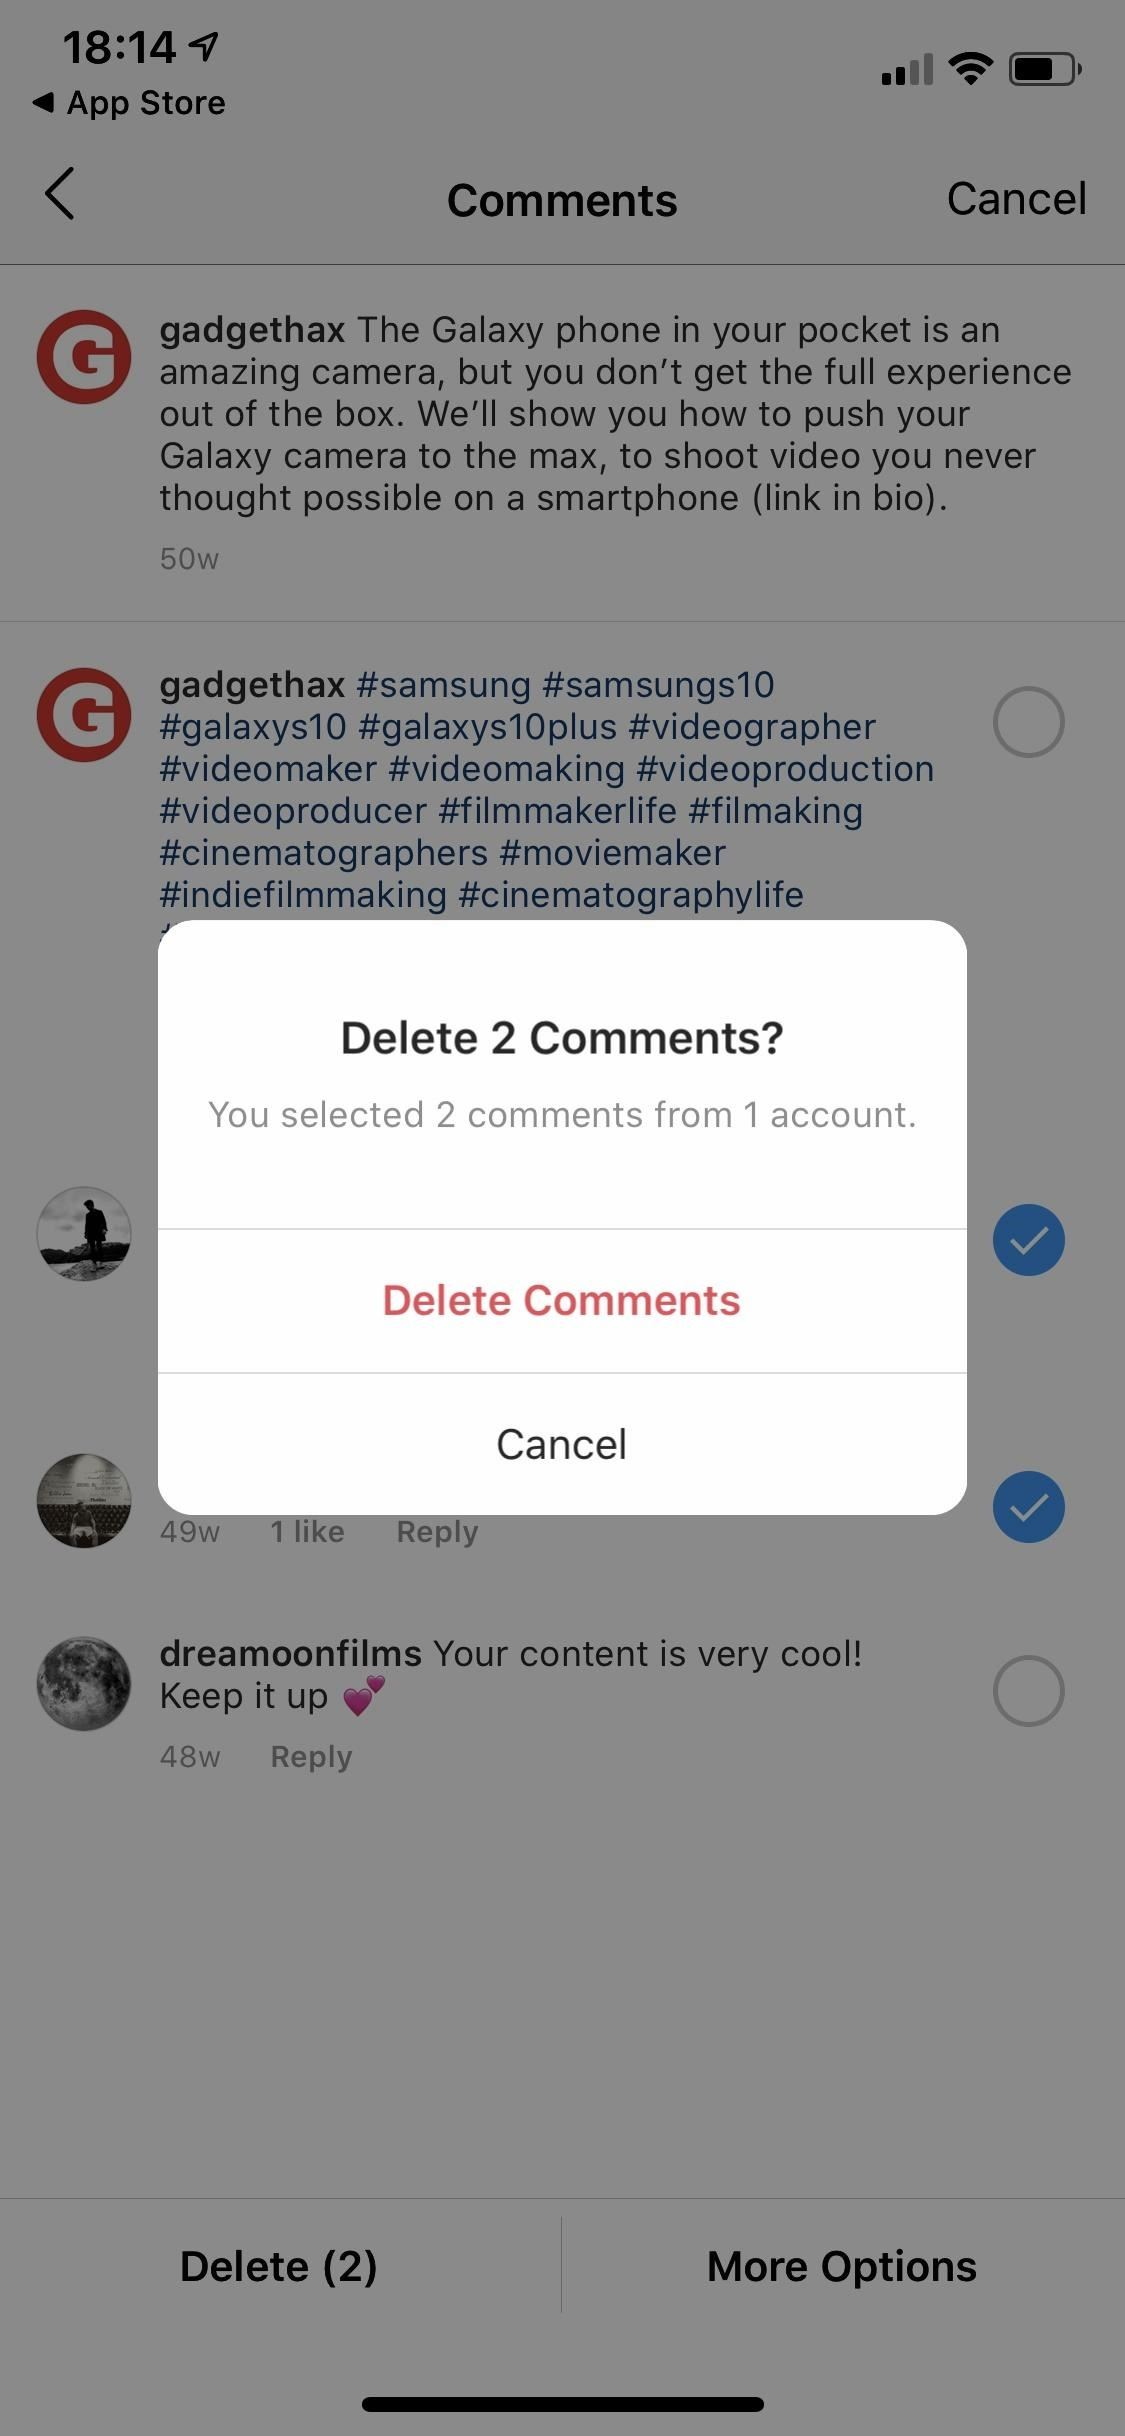 How to Bulk Delete Multiple Instagram Comments at the Same Time